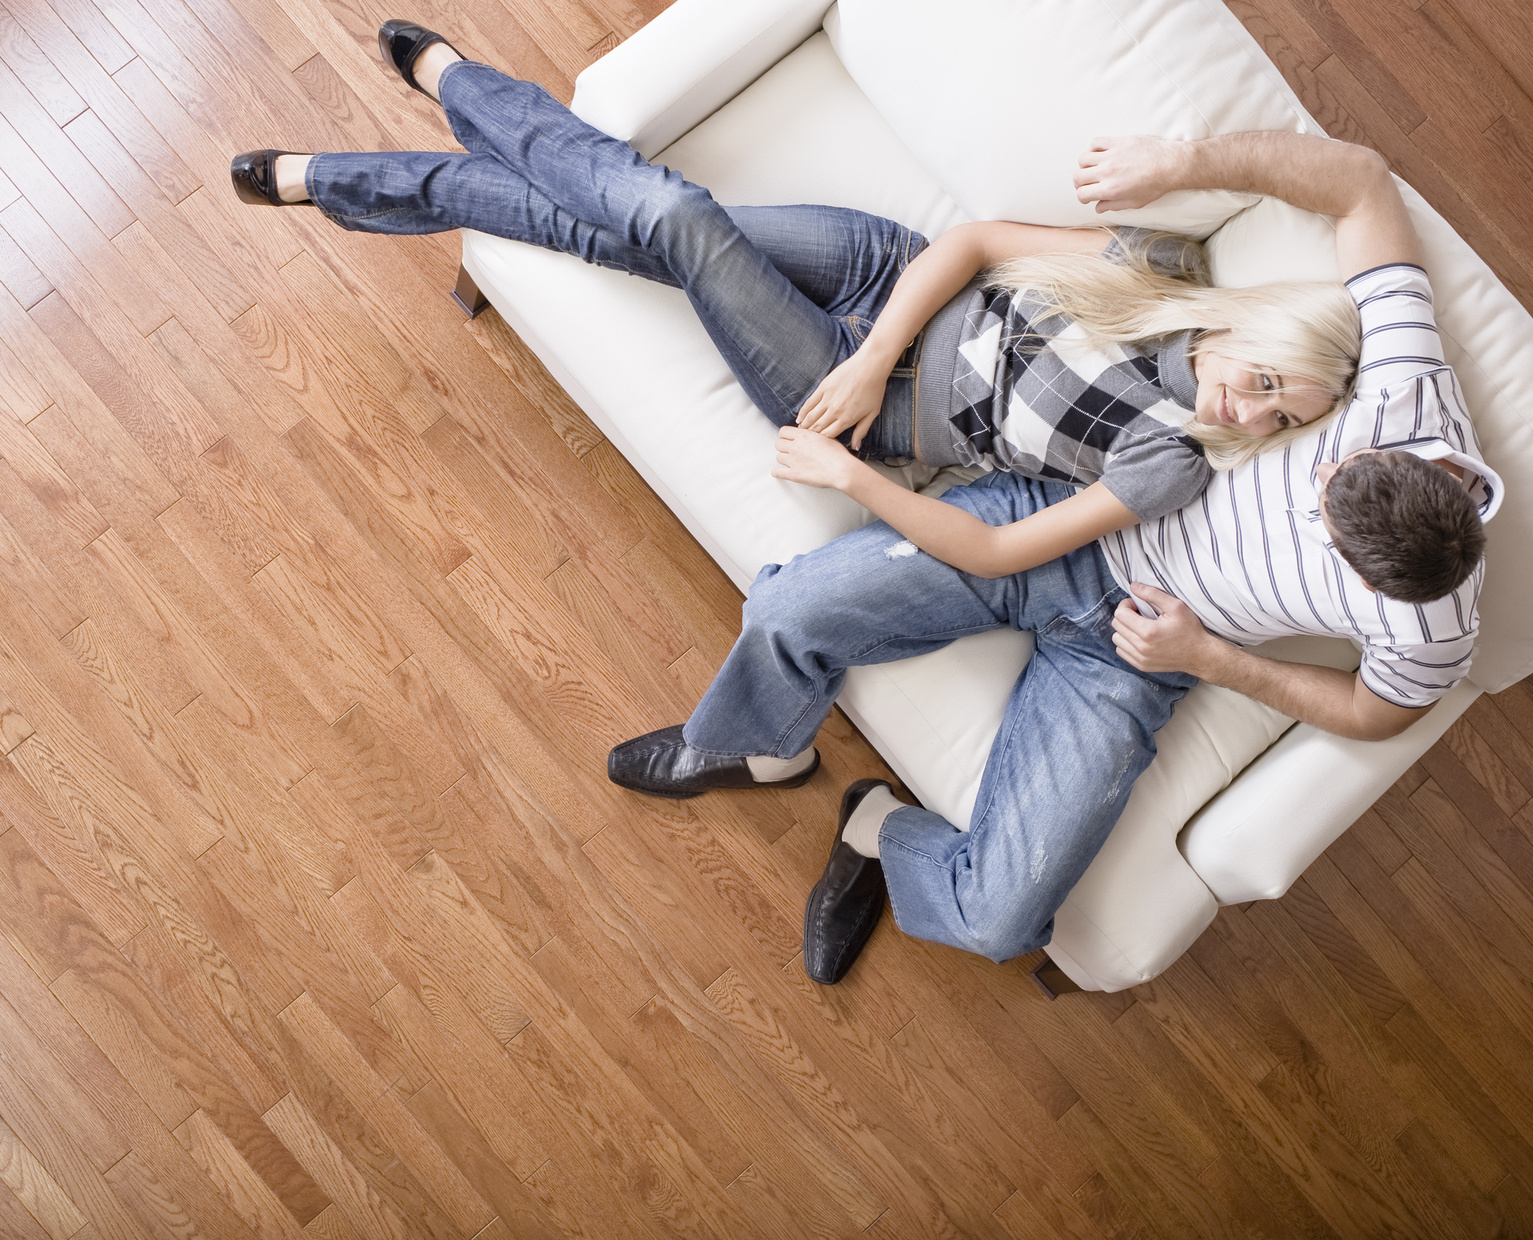 Flooring design professionals in Ronks, PA from Wall to Wall Floor Covering